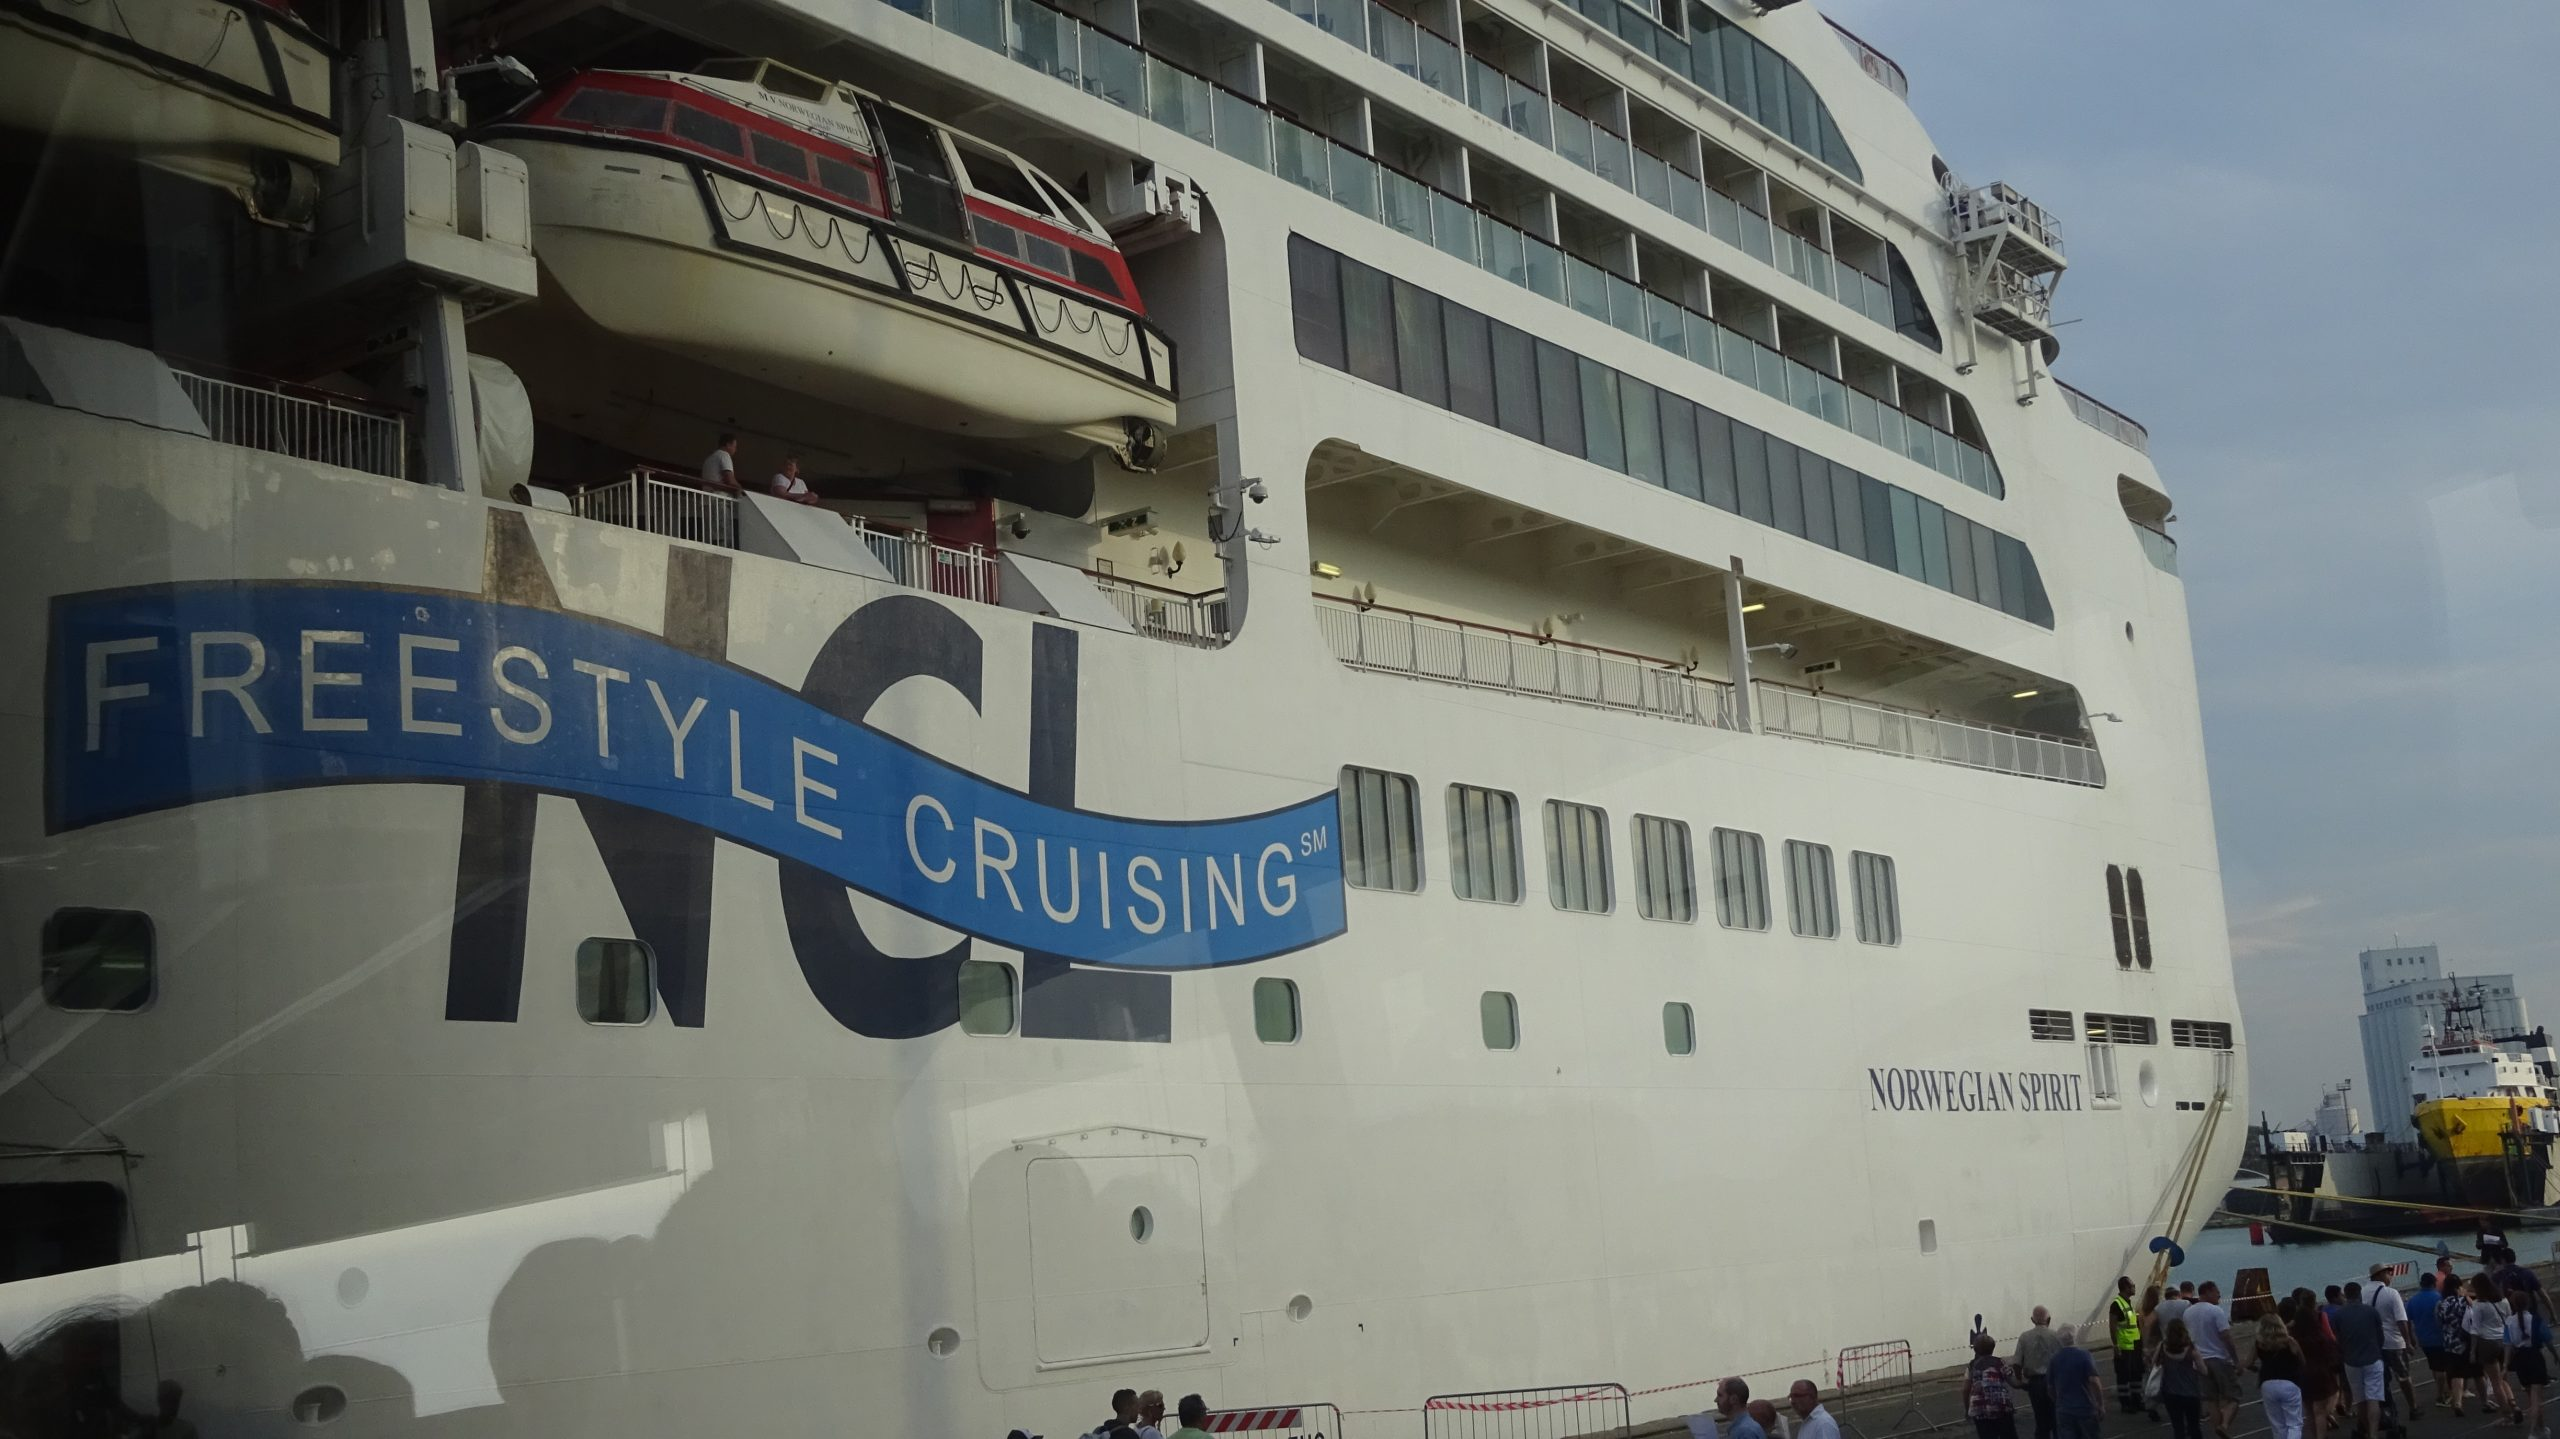 2016-September: Mediterranean Cruise on Norwegian Spirit